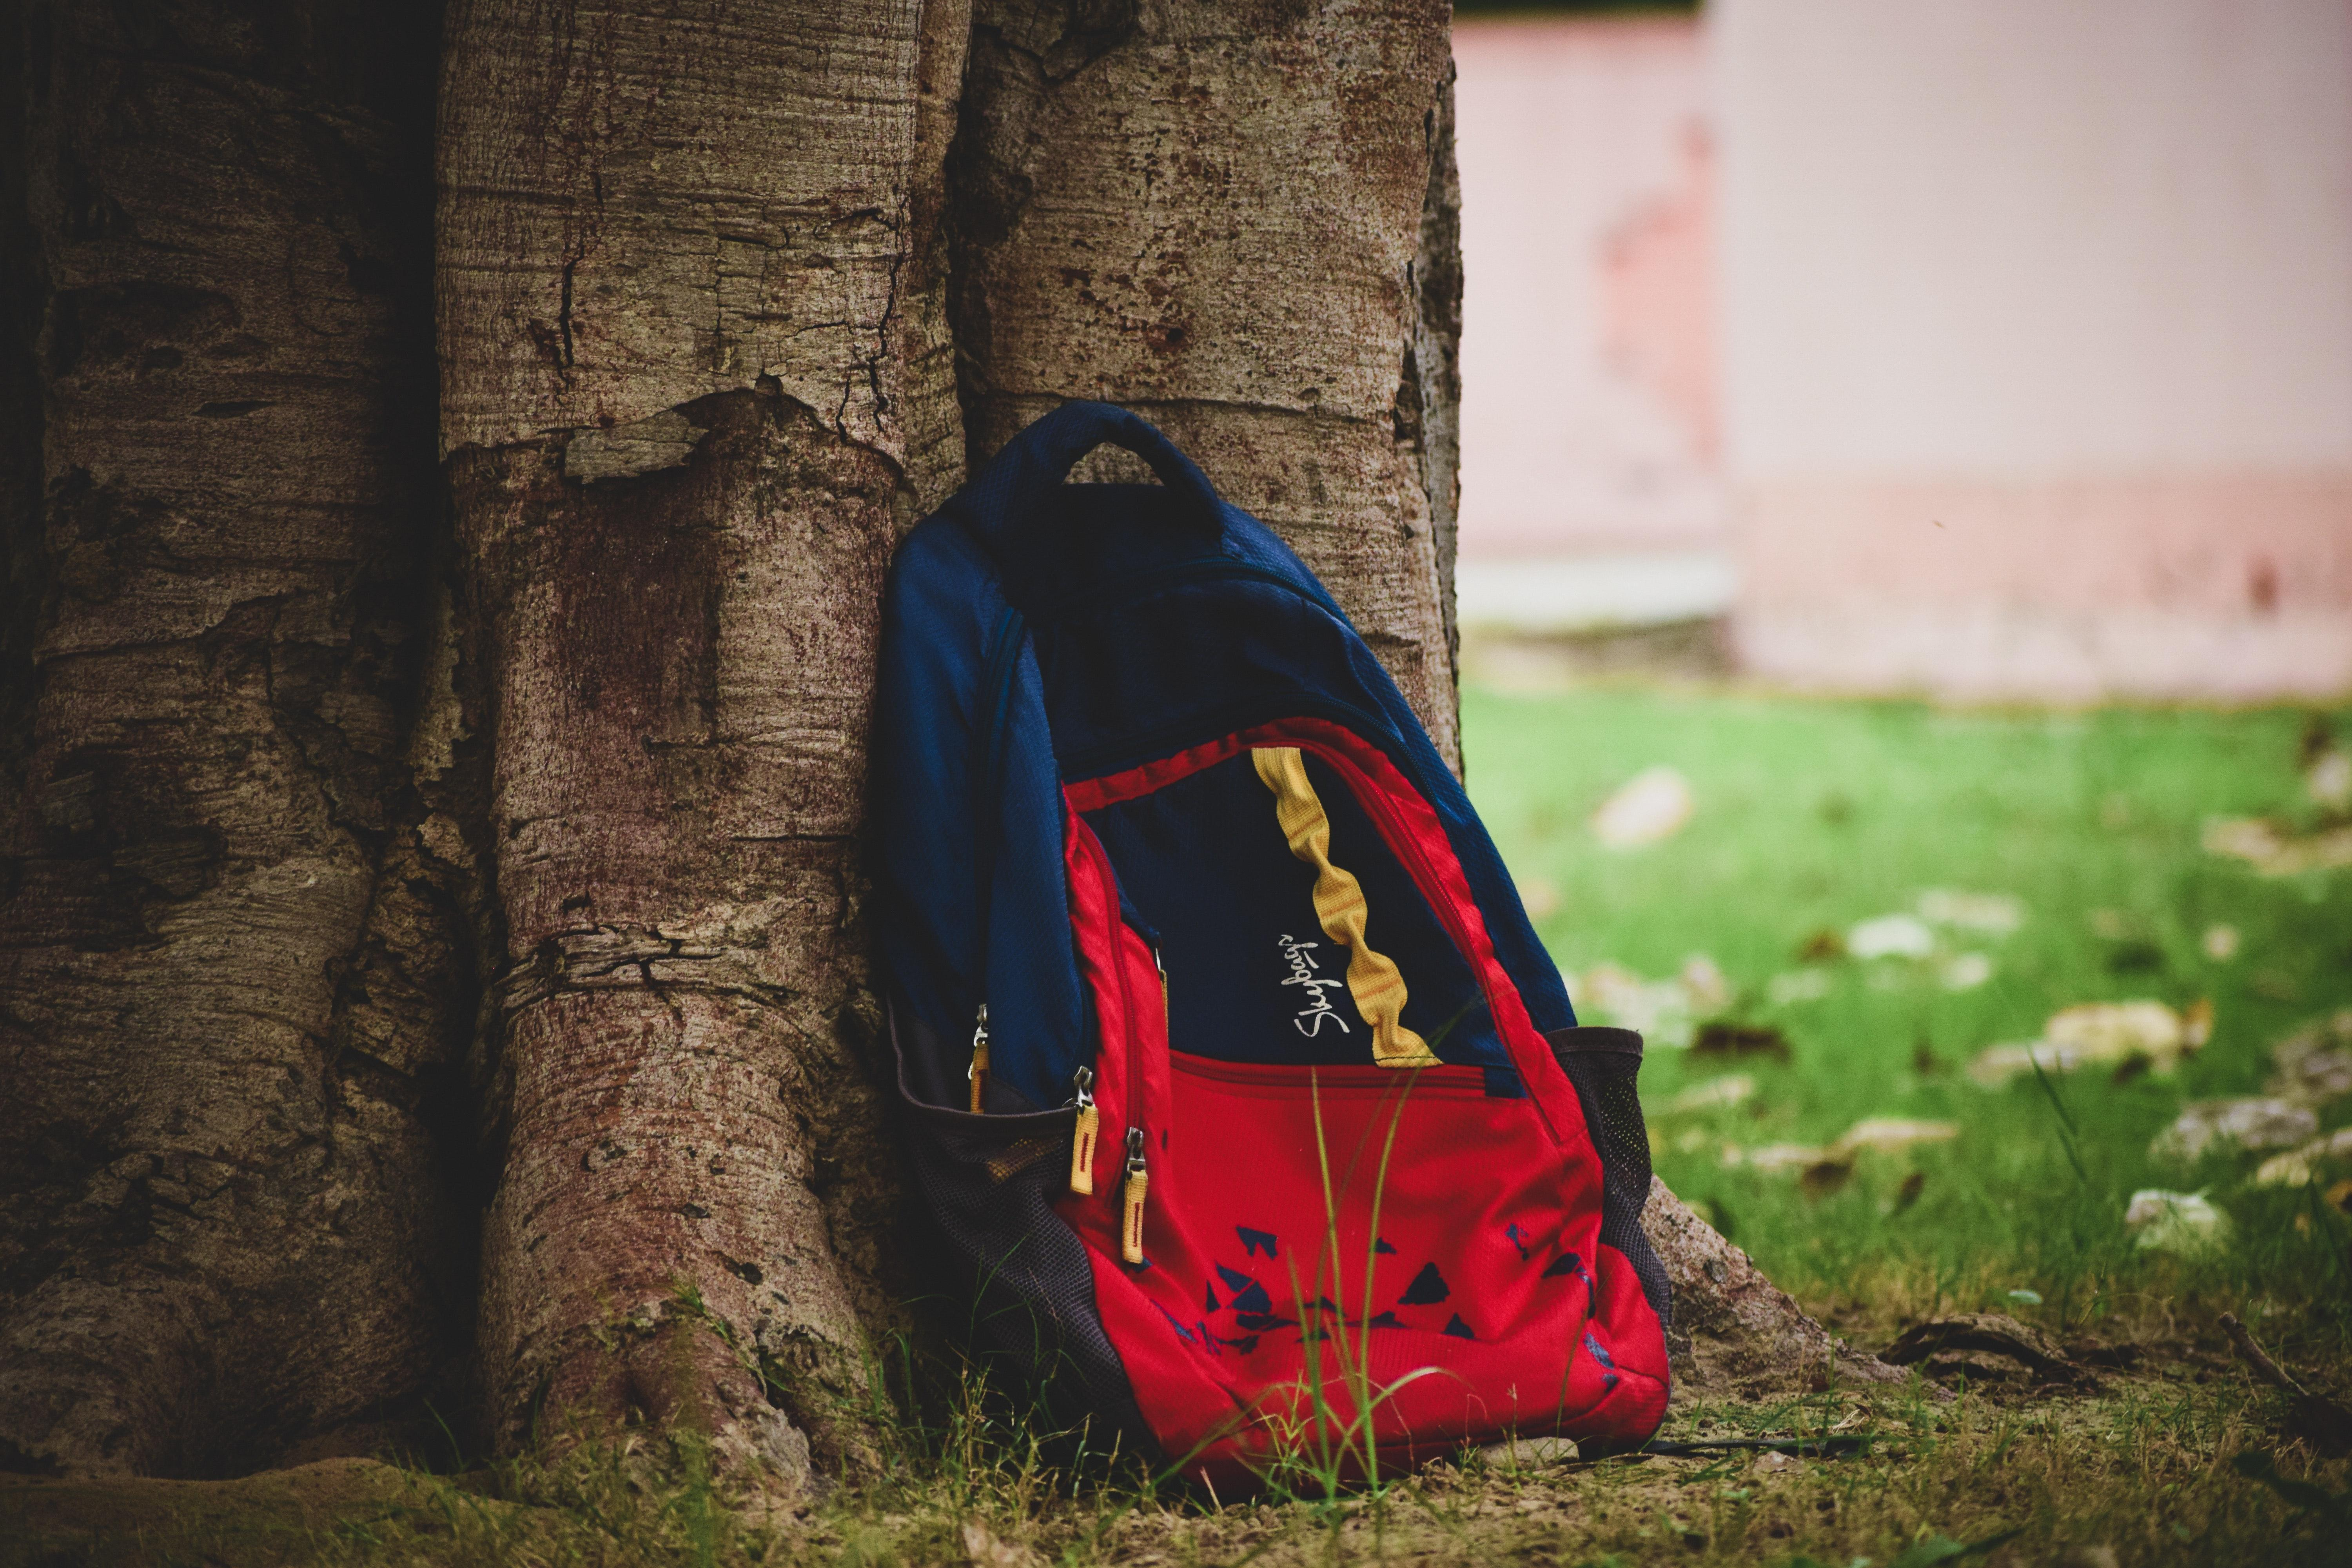 red and blue backpack leaning against tree trunk